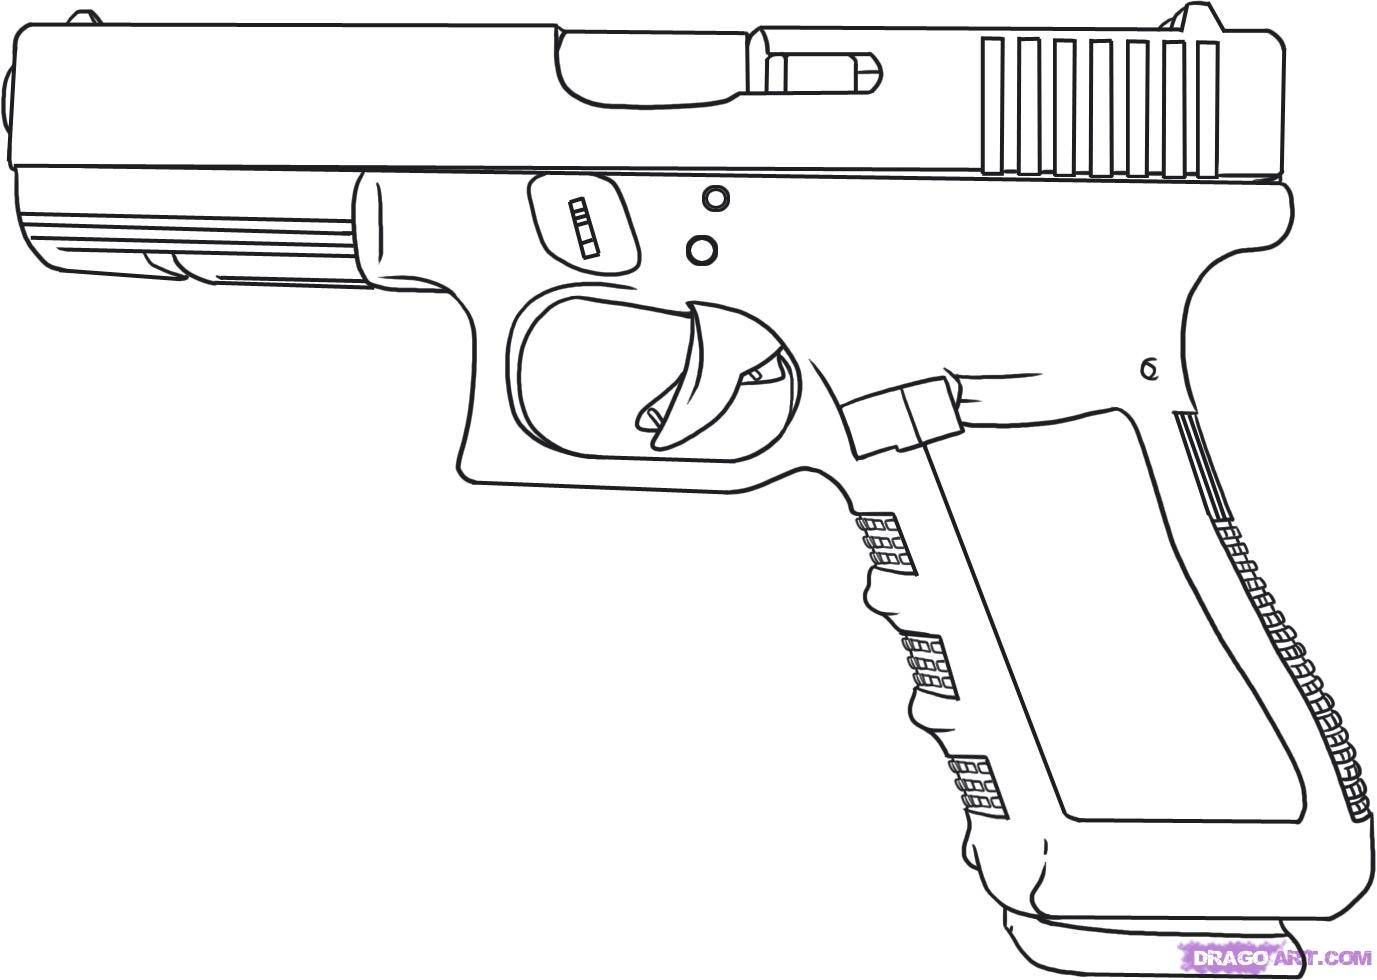 Easy Gun Drawings Picture To Draw Pinterest Drawing Pictures